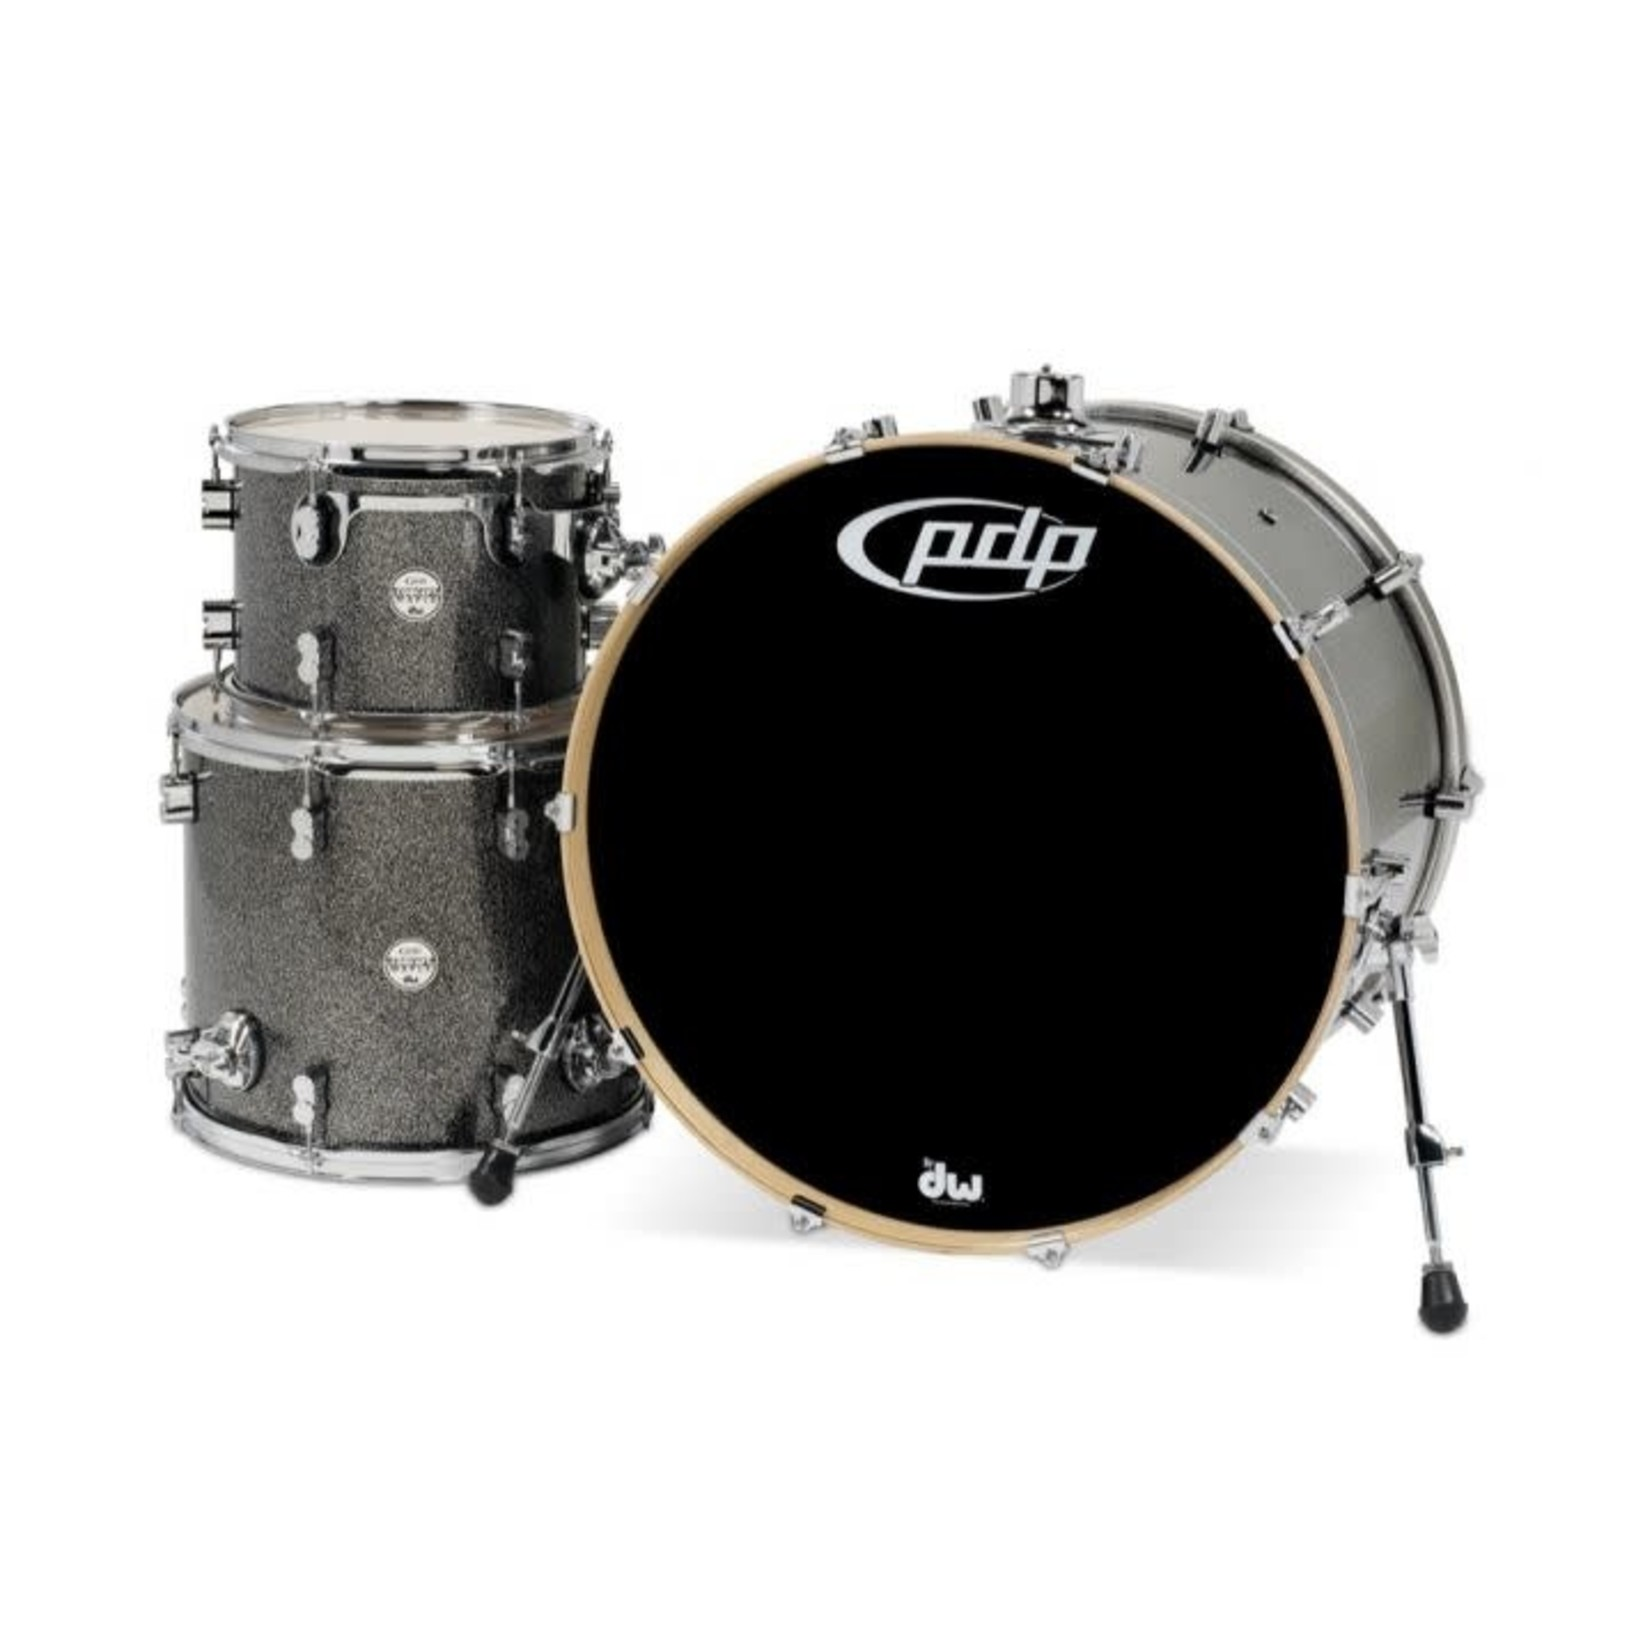 PDP PDP CONCEPT MAPLE 3-PC SHELL PACK 13/16/24 (BLACK SPARKLE)